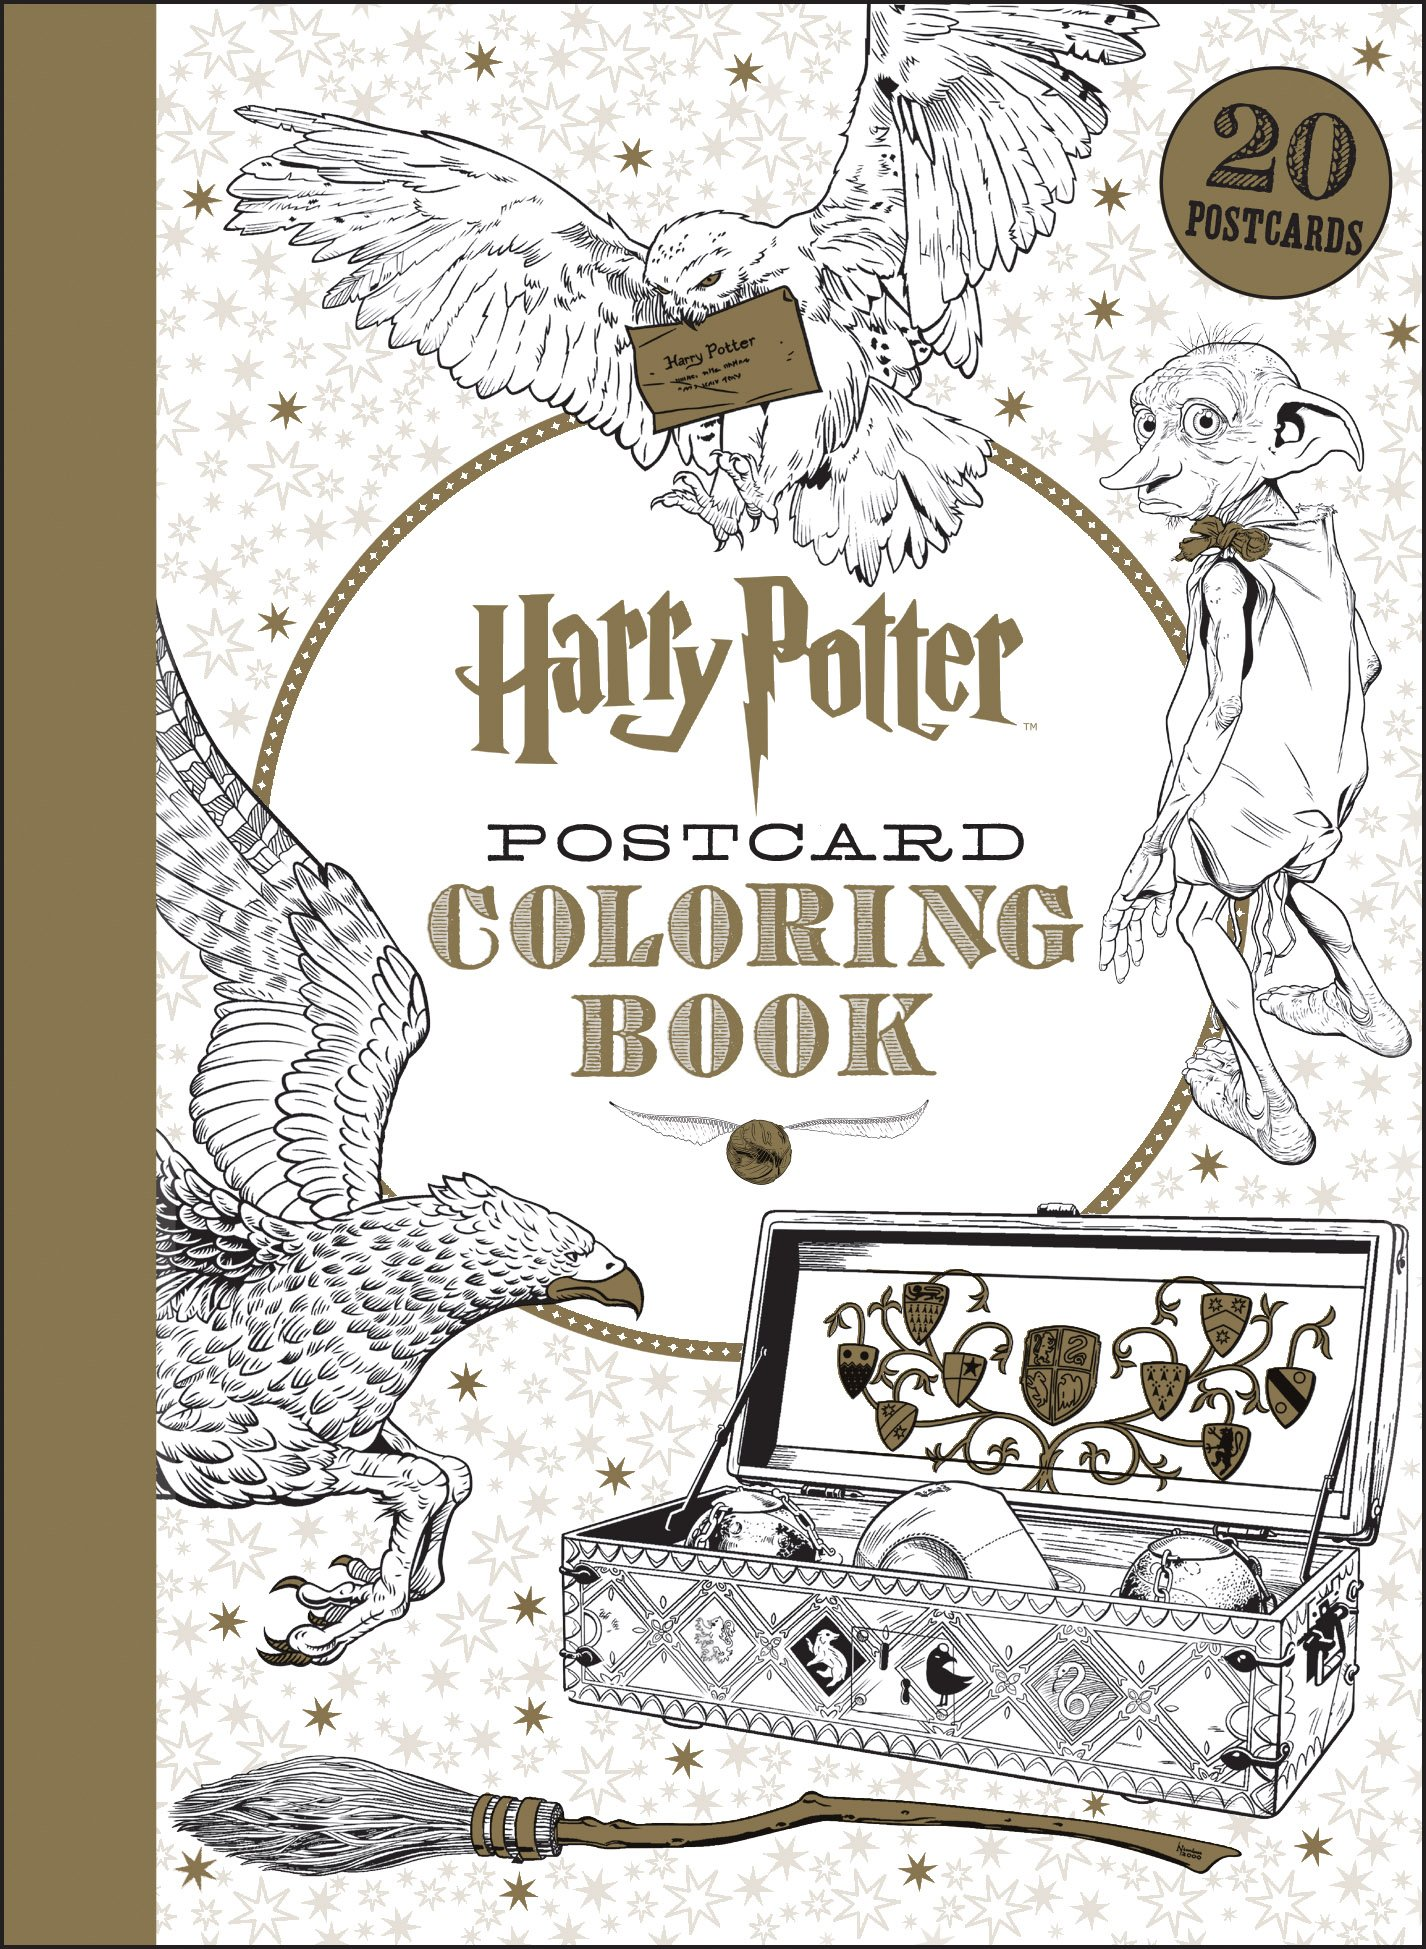 A fun magic coloring book amazon - Harry Potter Postcard Coloring Book Scholastic 9781338045758 Amazon Com Books